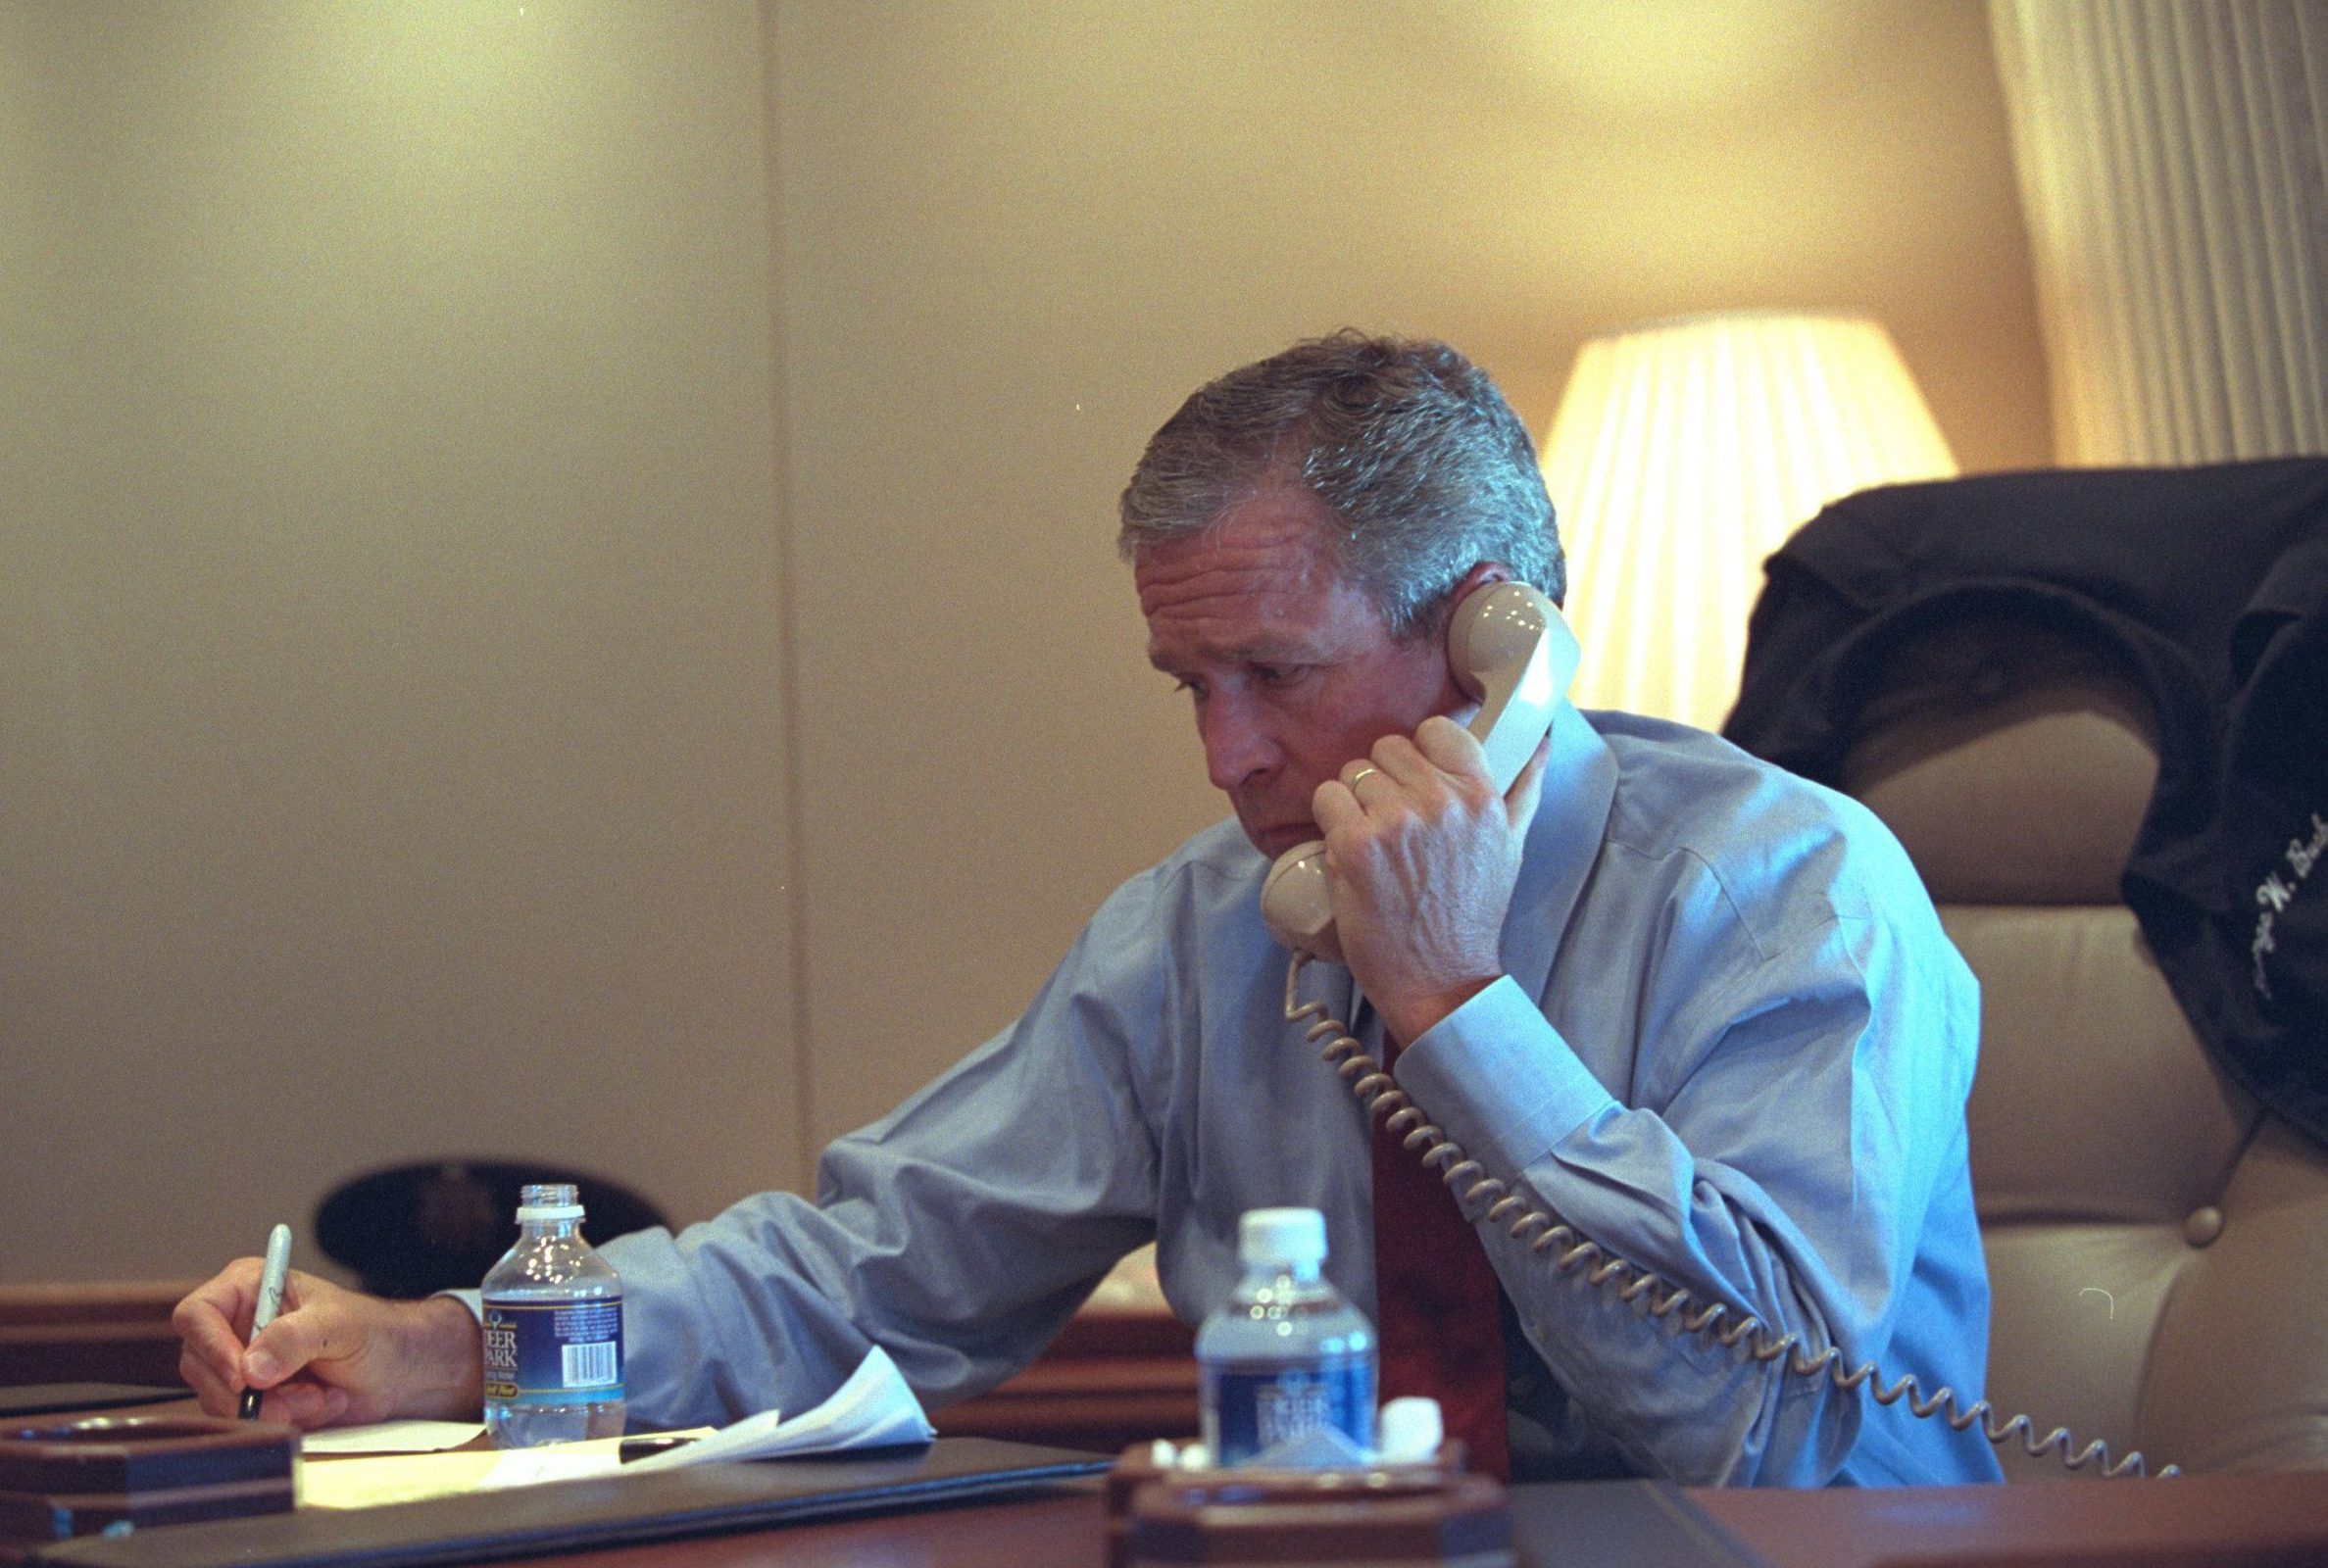 Please use individual photographer credits/George W. Bush Presidential Library/Rex Shutterstock. Editorial use onlynMandatory Credit: Photo by Eric Draper/G. W. Bush Pres./REX/Shutterstock (5701155n)nPresident George W. Bush confers with staff via telephone Tuesday, Sept. 11, 2001, from his office aboard Air Force One during the flight from Sarasota to Barksdale Air Force Basen9/11: A Presidential reaction, America - 11 Sep 2001nOn September 11, 2001, terrorists attacked the United States. Over the next 50 days and nearly 50,000 images later, White House photographers would capture the horror and heroism, the courage and compassion surrounding those attacks. From a Florida second-grade classroom to a ceremonial first pitch, these moments in time reflect the resounding resolution and resiliency of a president.nnPresident George W. Bush began his schedule that day at the Emma E. Booker Elementary School in Sarasota, Florida. Participating in a second-grade reading demonstration, he was informed by his Chief of Staff that America is under attack. As events unfolded in New York City, Washington, DC, and Pennsylvania, President Bush directed the nations response from Air Force One as he flew from Sarasota to Barksdale Air Force Base to Offutt Air Force Base and returned to Washington, DC, where he addressed the nation from the Oval Office.n